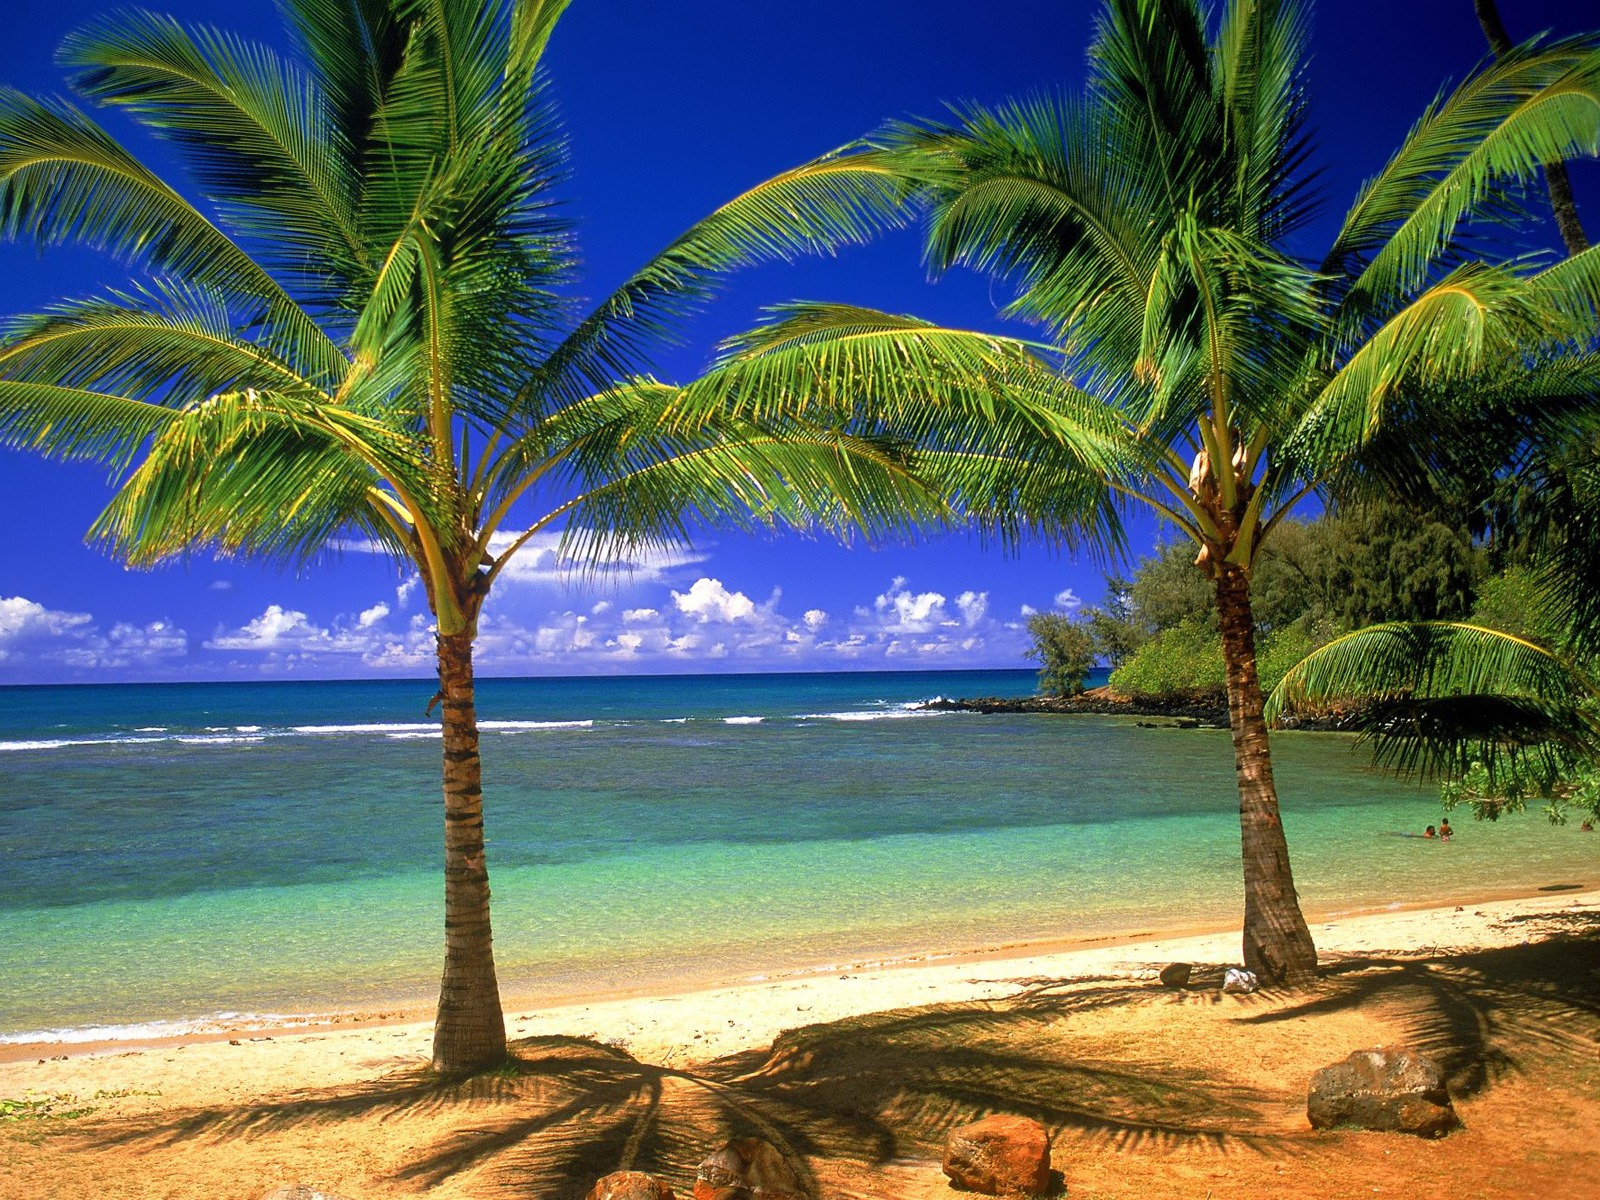 Beautiful Beach Backgrounds Palm Trees Palm Trees on The Beach